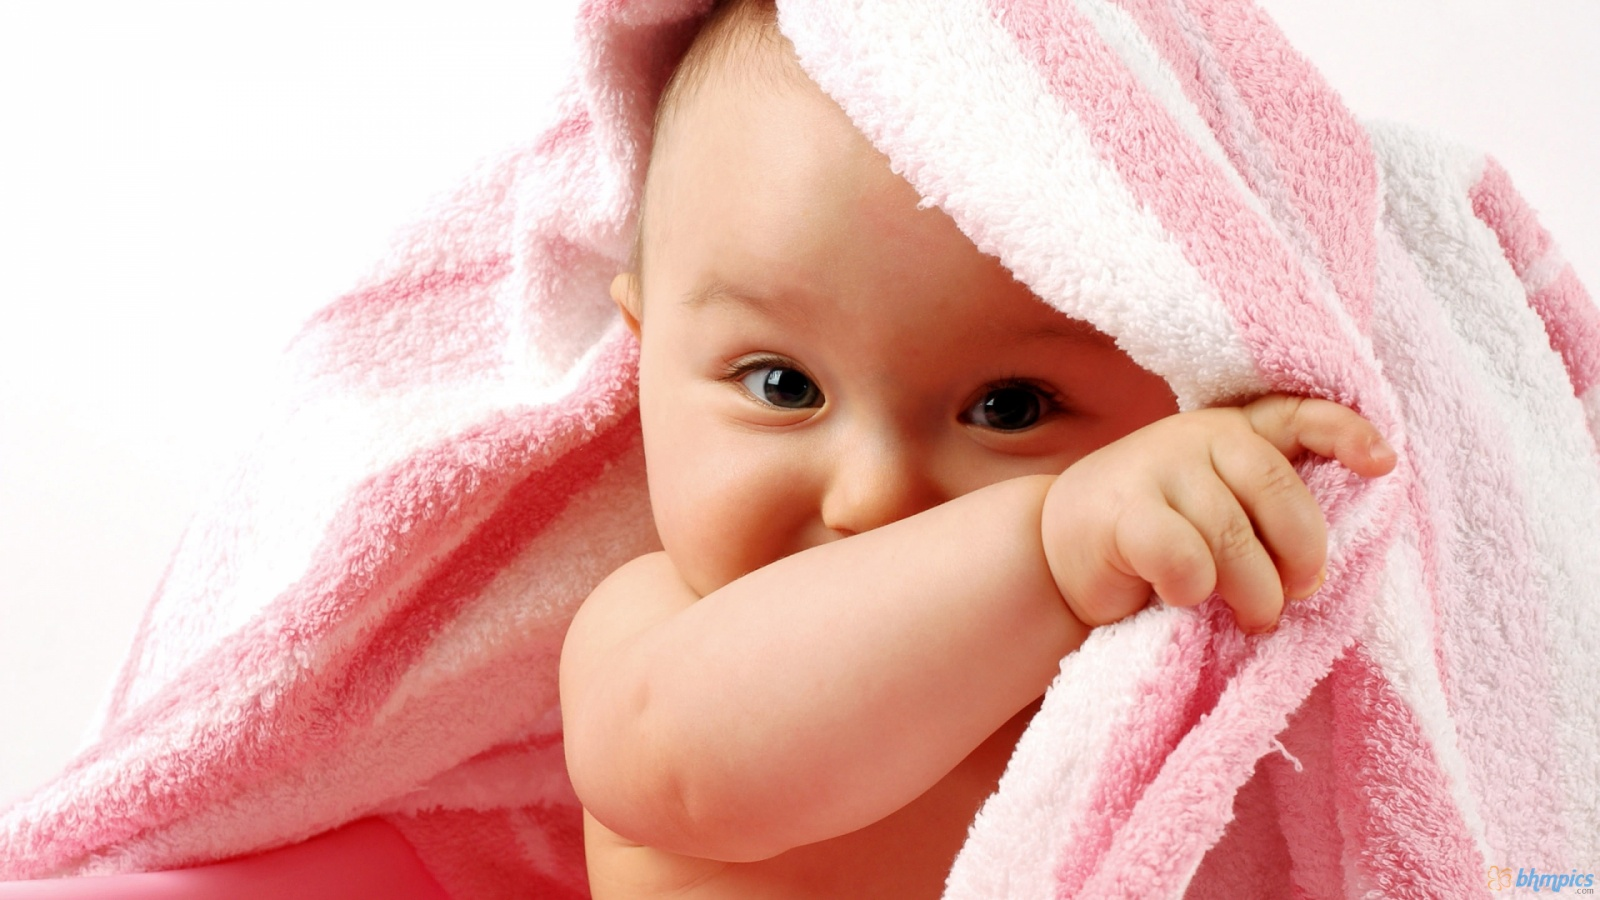 cute babies wallpapers | amazing wallpapers